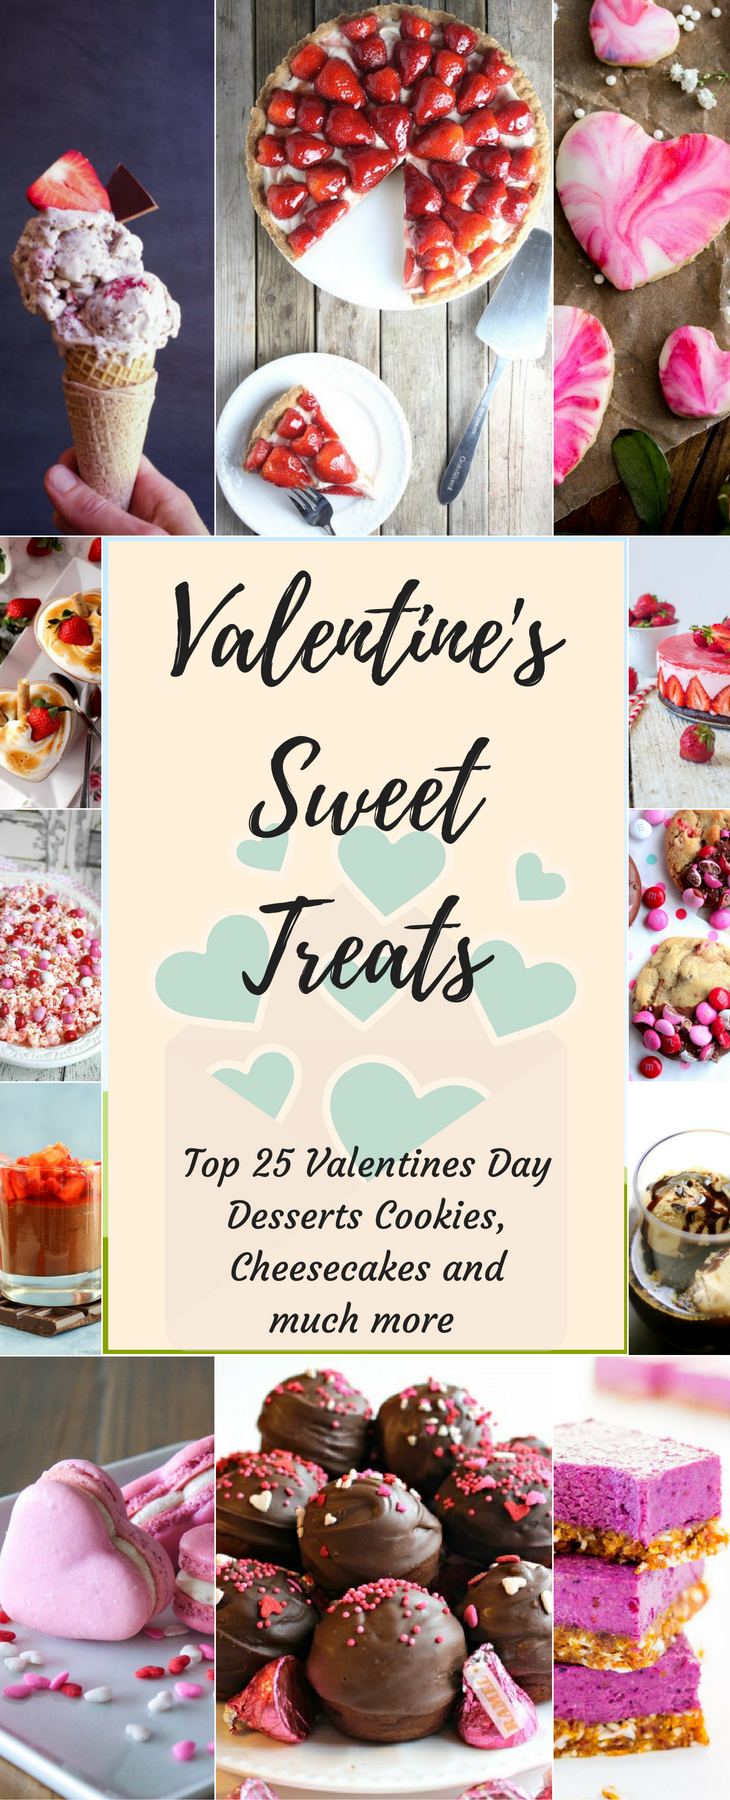 Valentine's Day Sweet Treats Pin